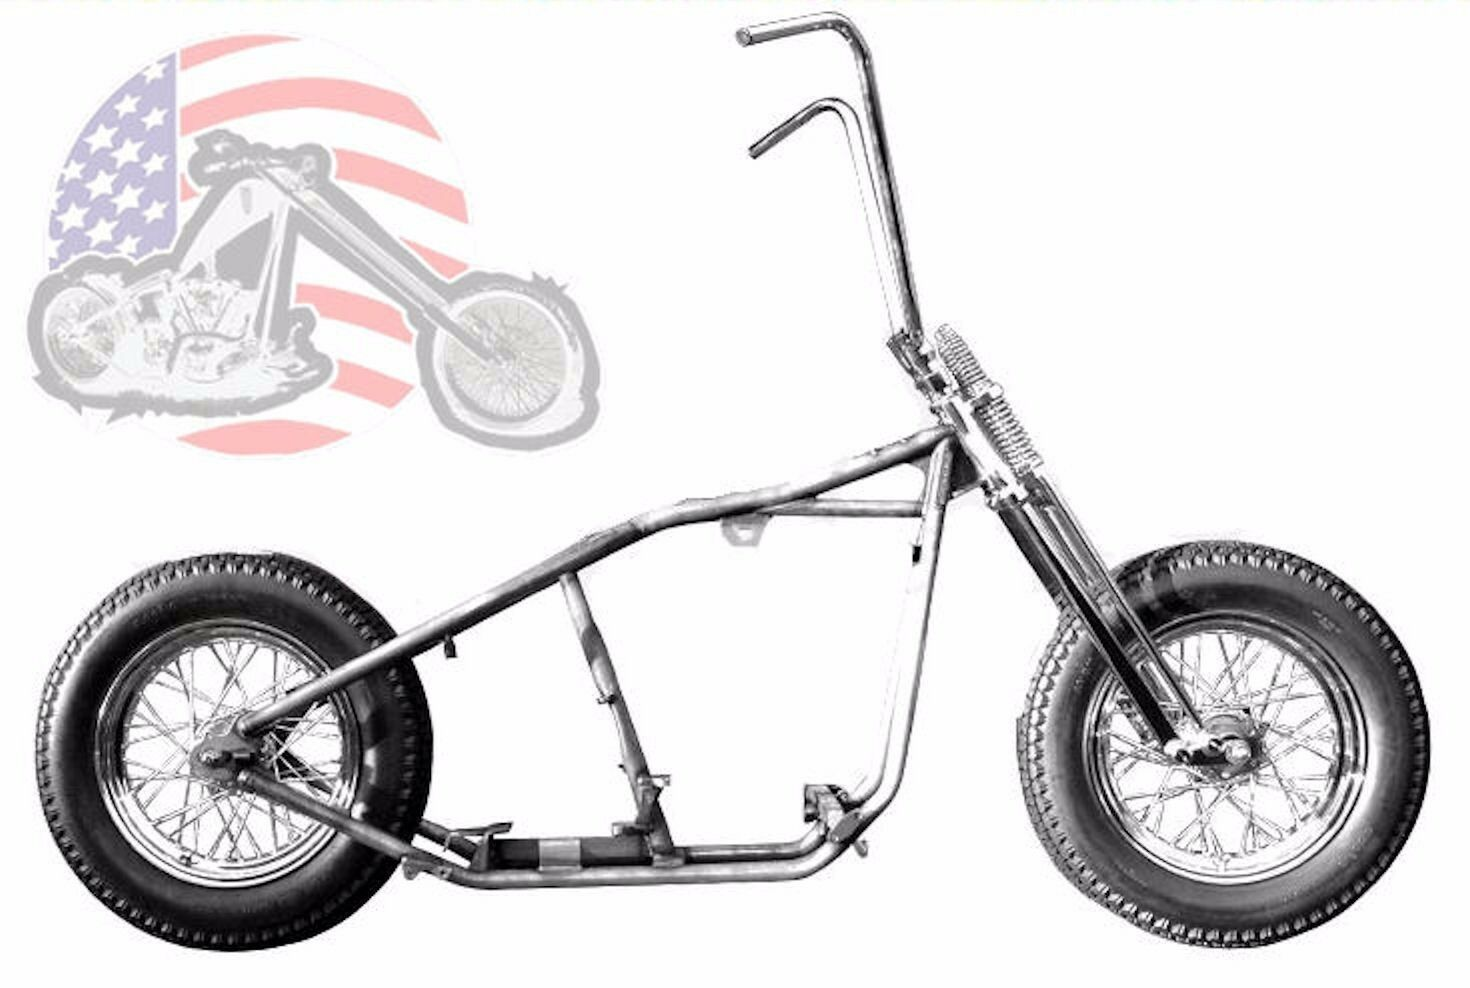 KRAFT TECH CHOPPER Bobber Rigid Hardtail Frame Springer Rolling ...